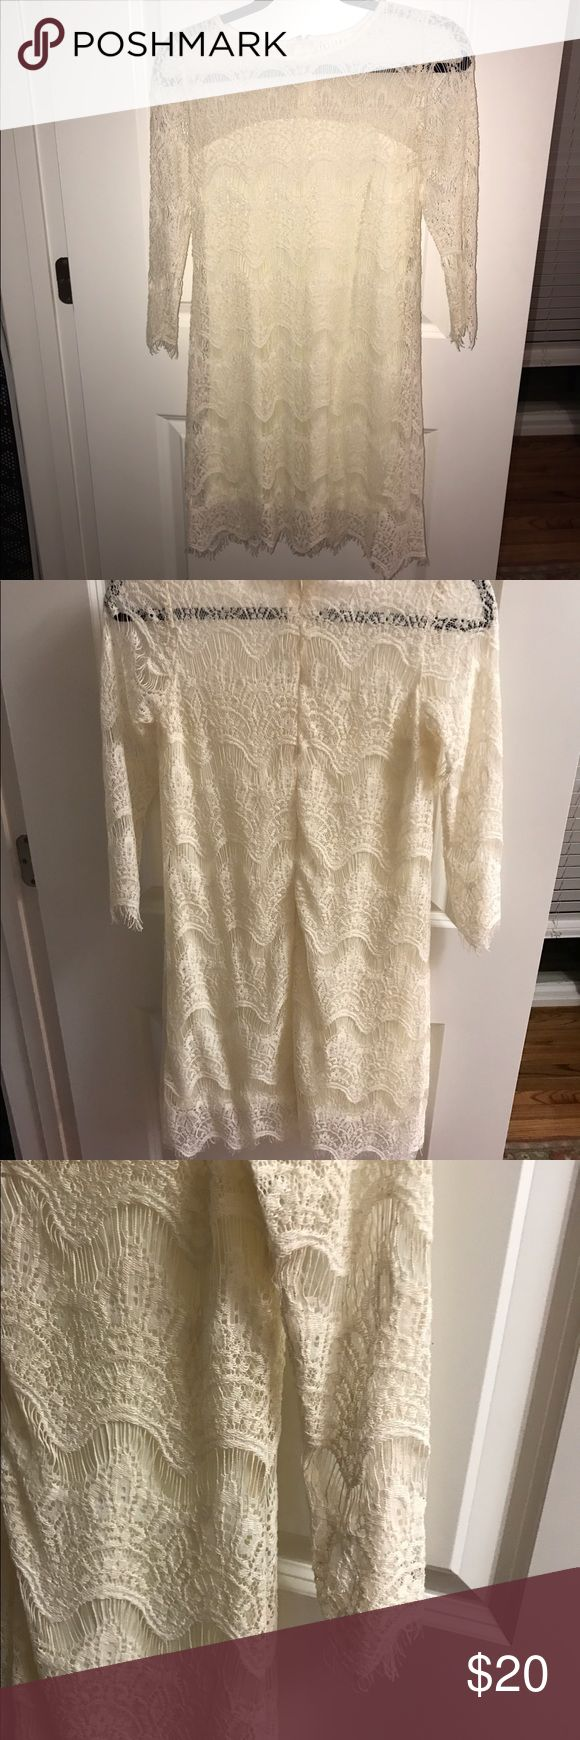 Cream Lace 3/4 sleeve dress REDUCED PRICE‼️ Lace with built in under slip. Worn once for pictures! Great condition! Super cute dress for work or casual night out! Dresses